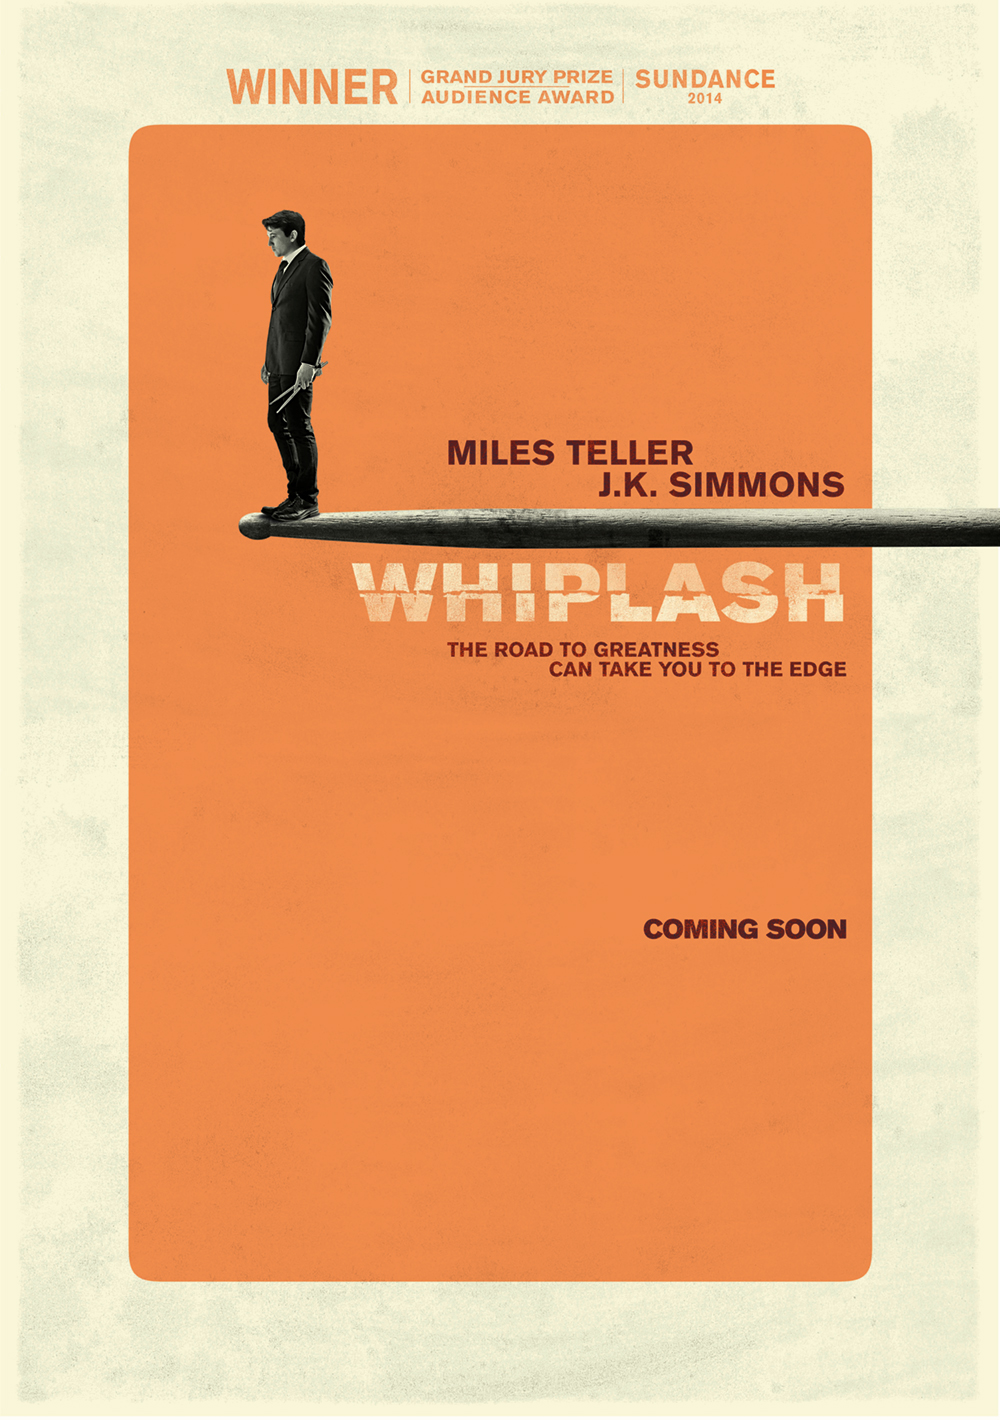 whiplash-poster-cold-open-is-firm-dont-know-artist1